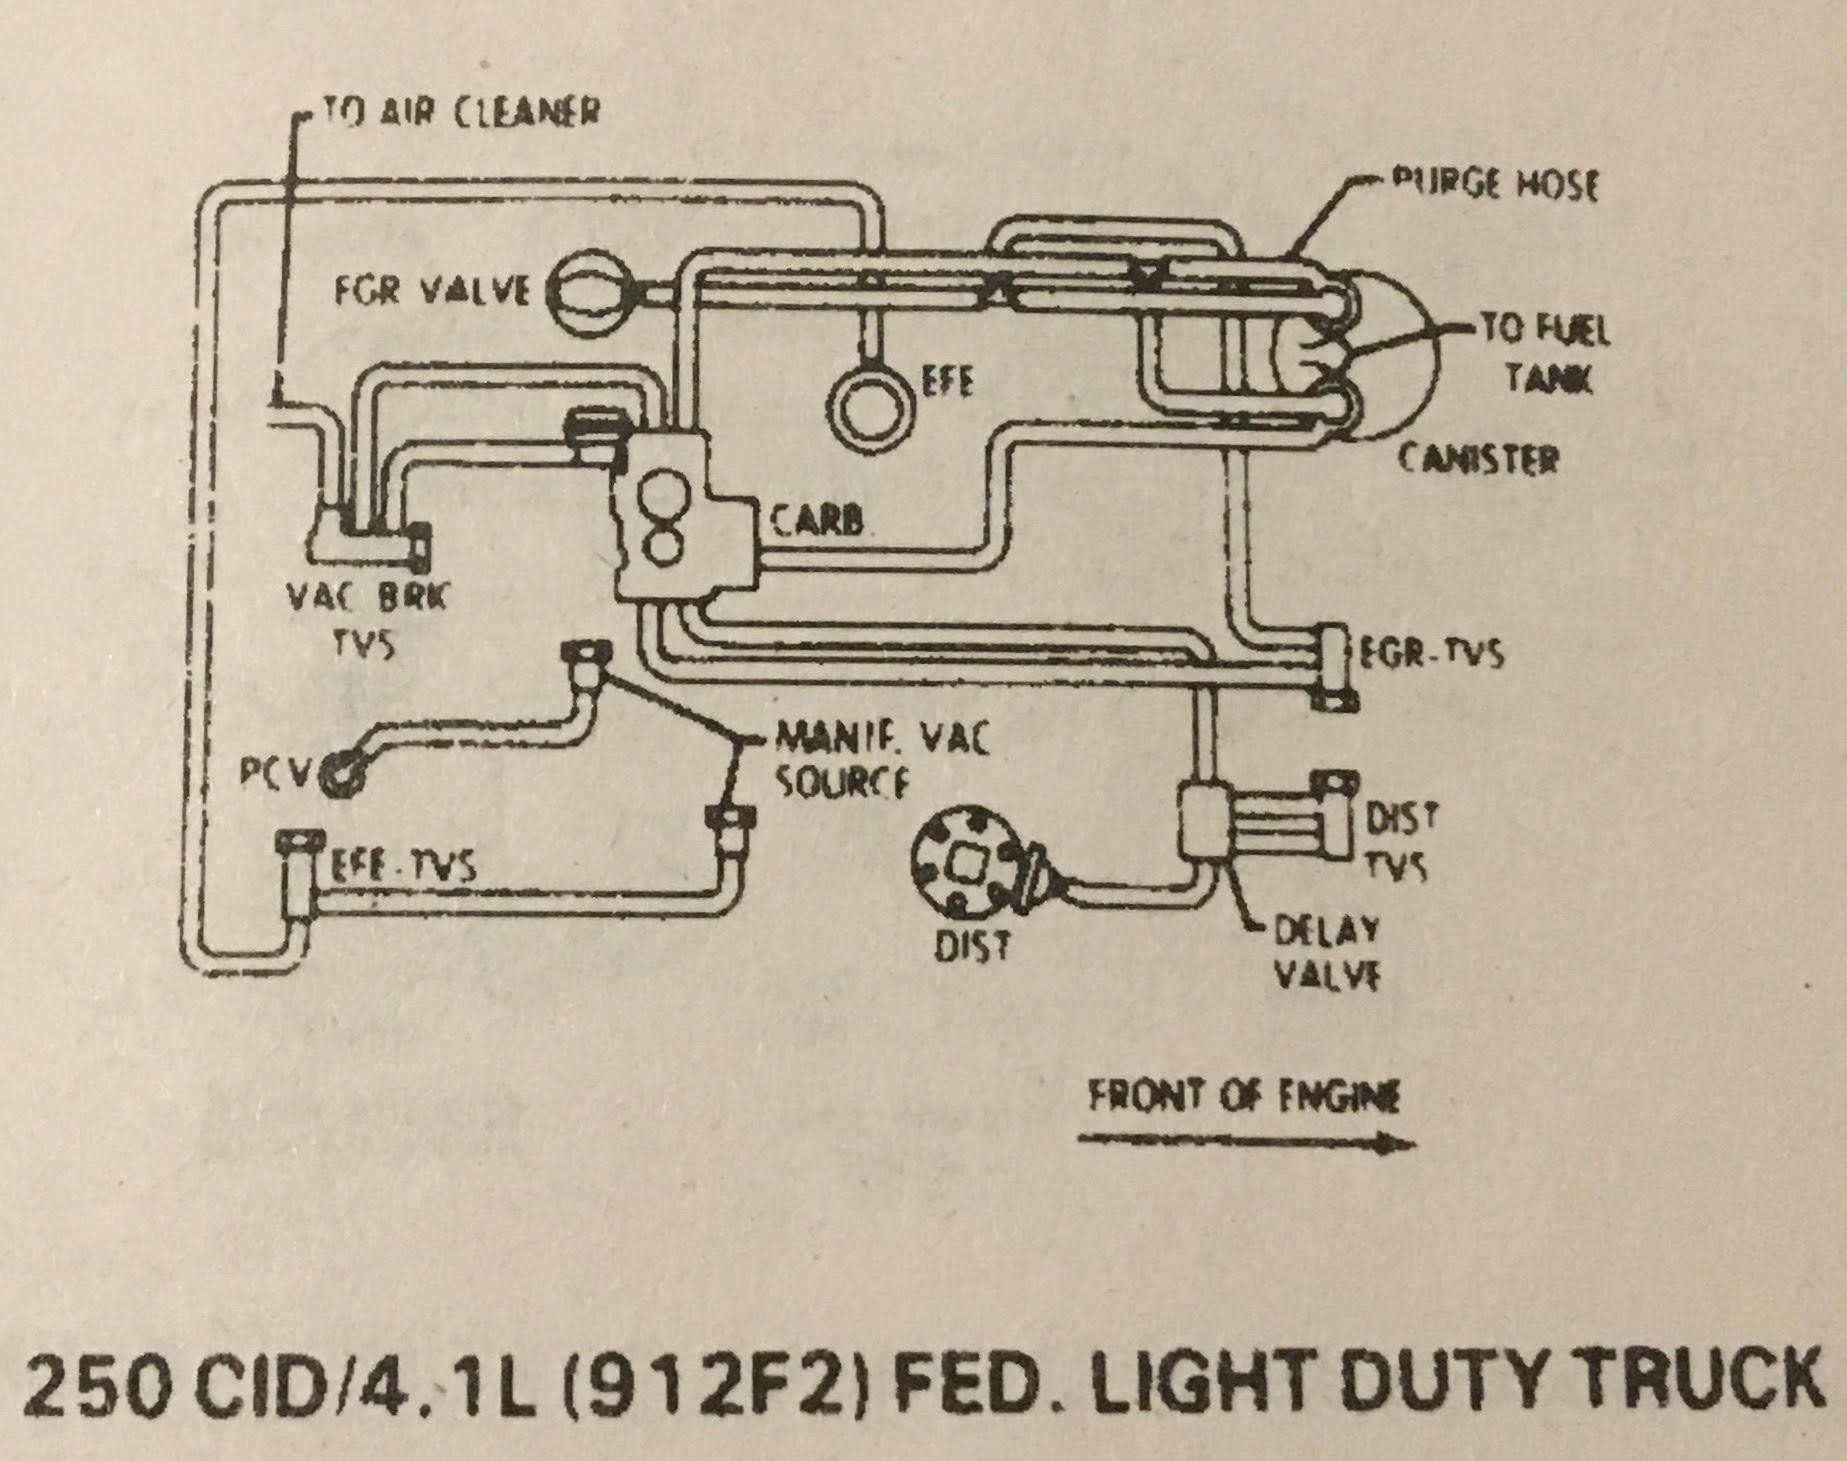 1979 250 I6 Running Rough - Page 2 - Chevrolet Forum - Chevy Enthusiasts  Forums   Chevy 250 Engine Diagram      Chevrolet Forum